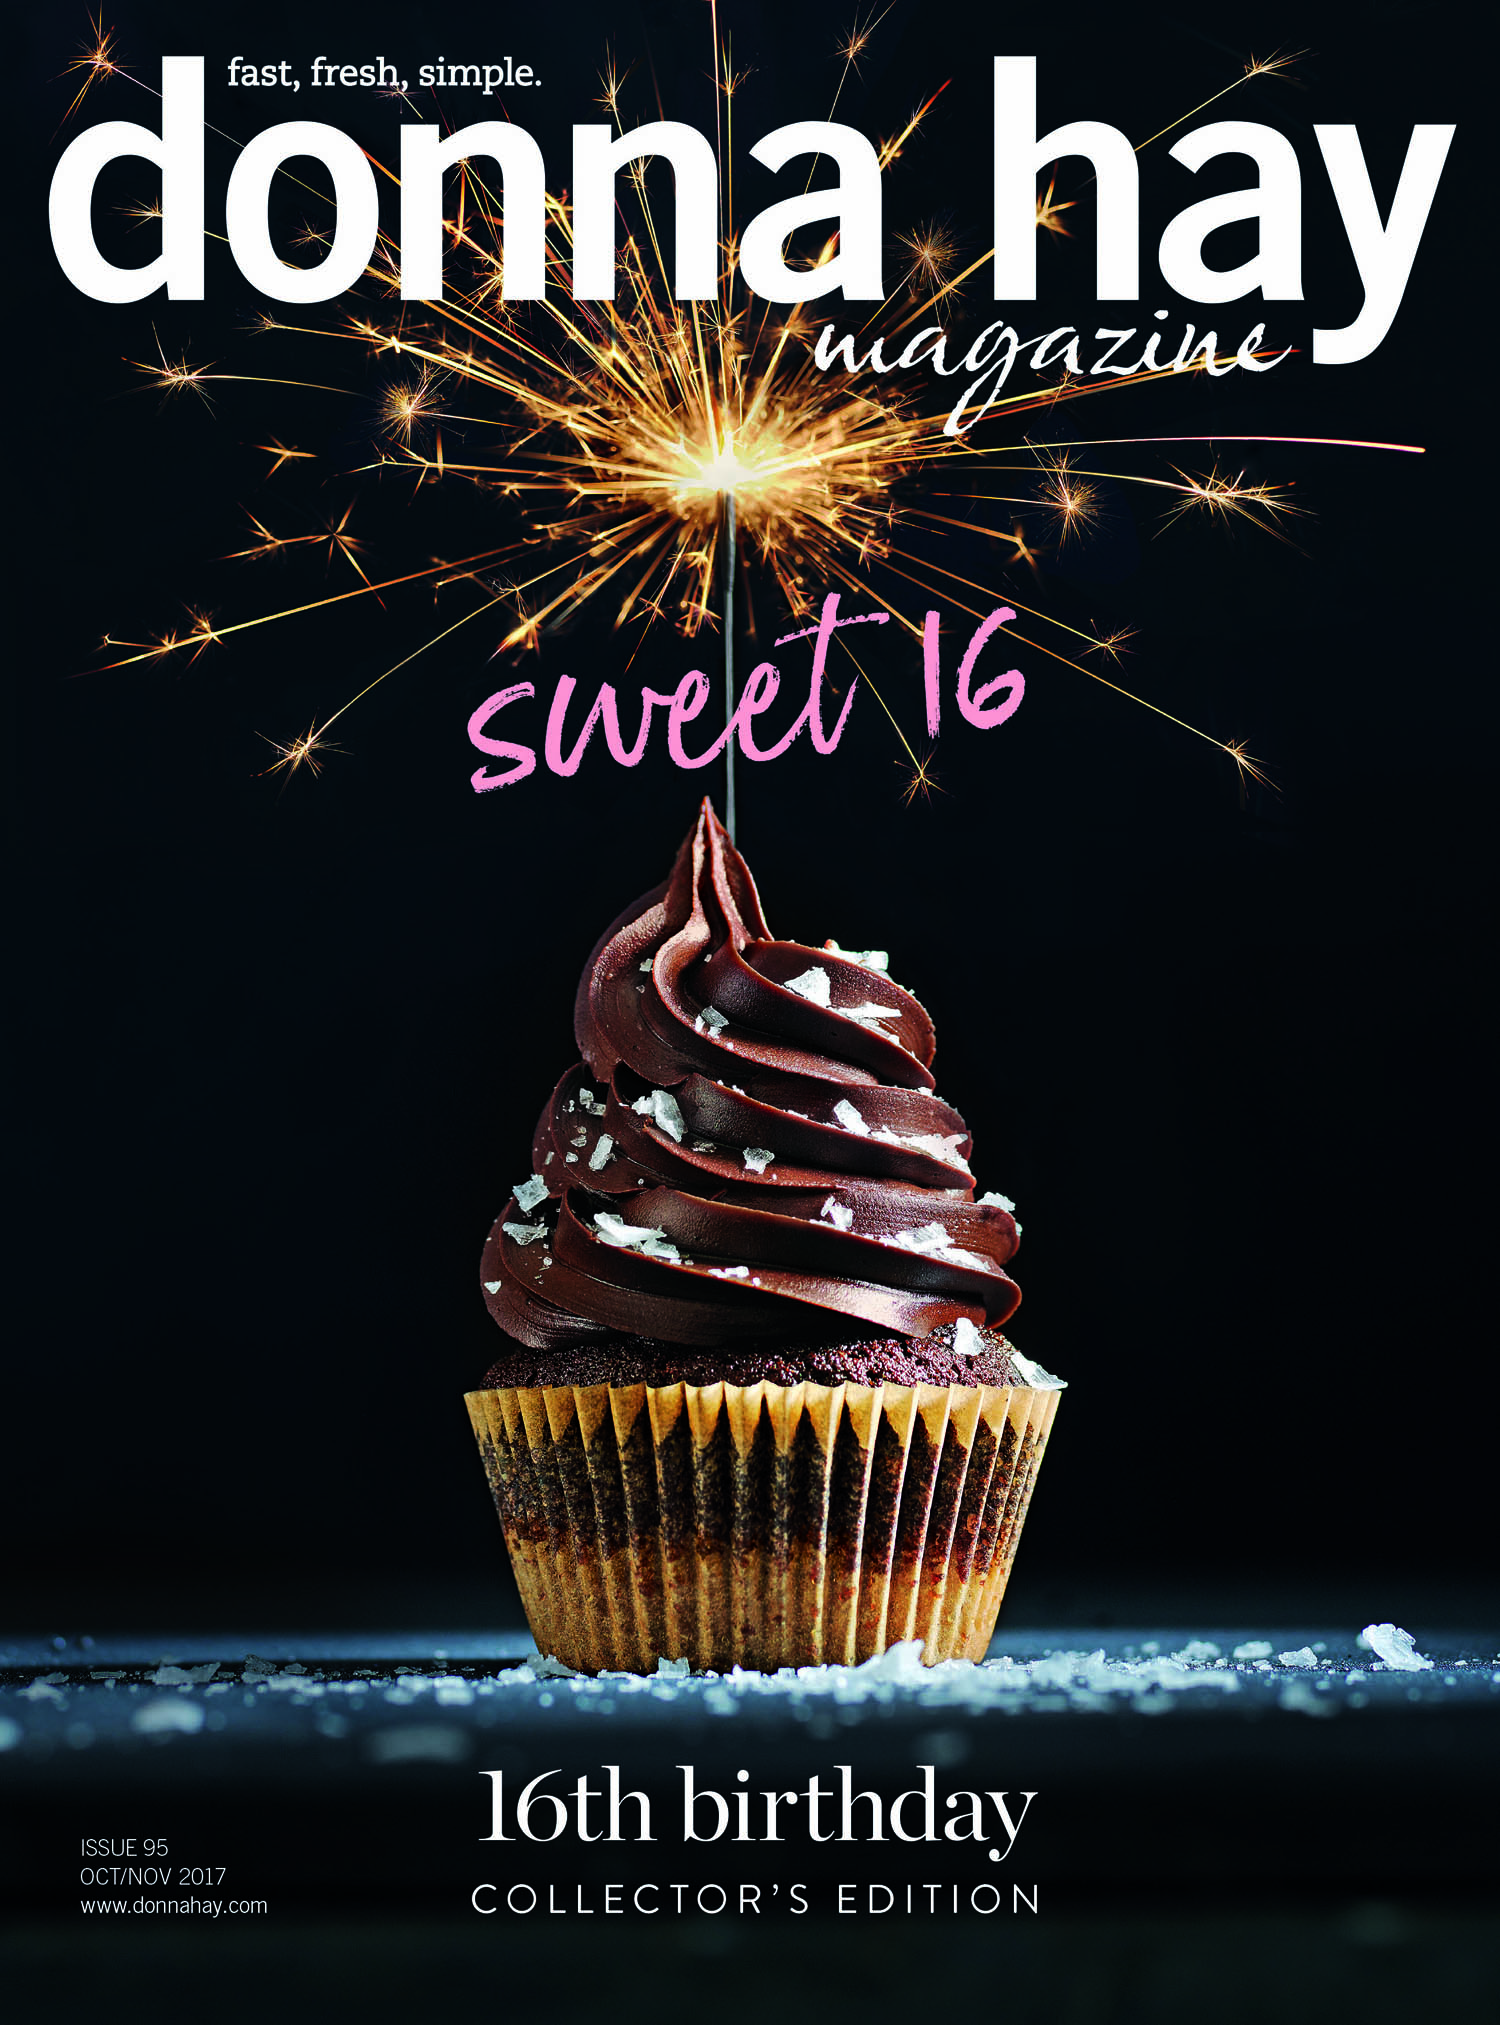 donna hay magazine cover - sweet 16